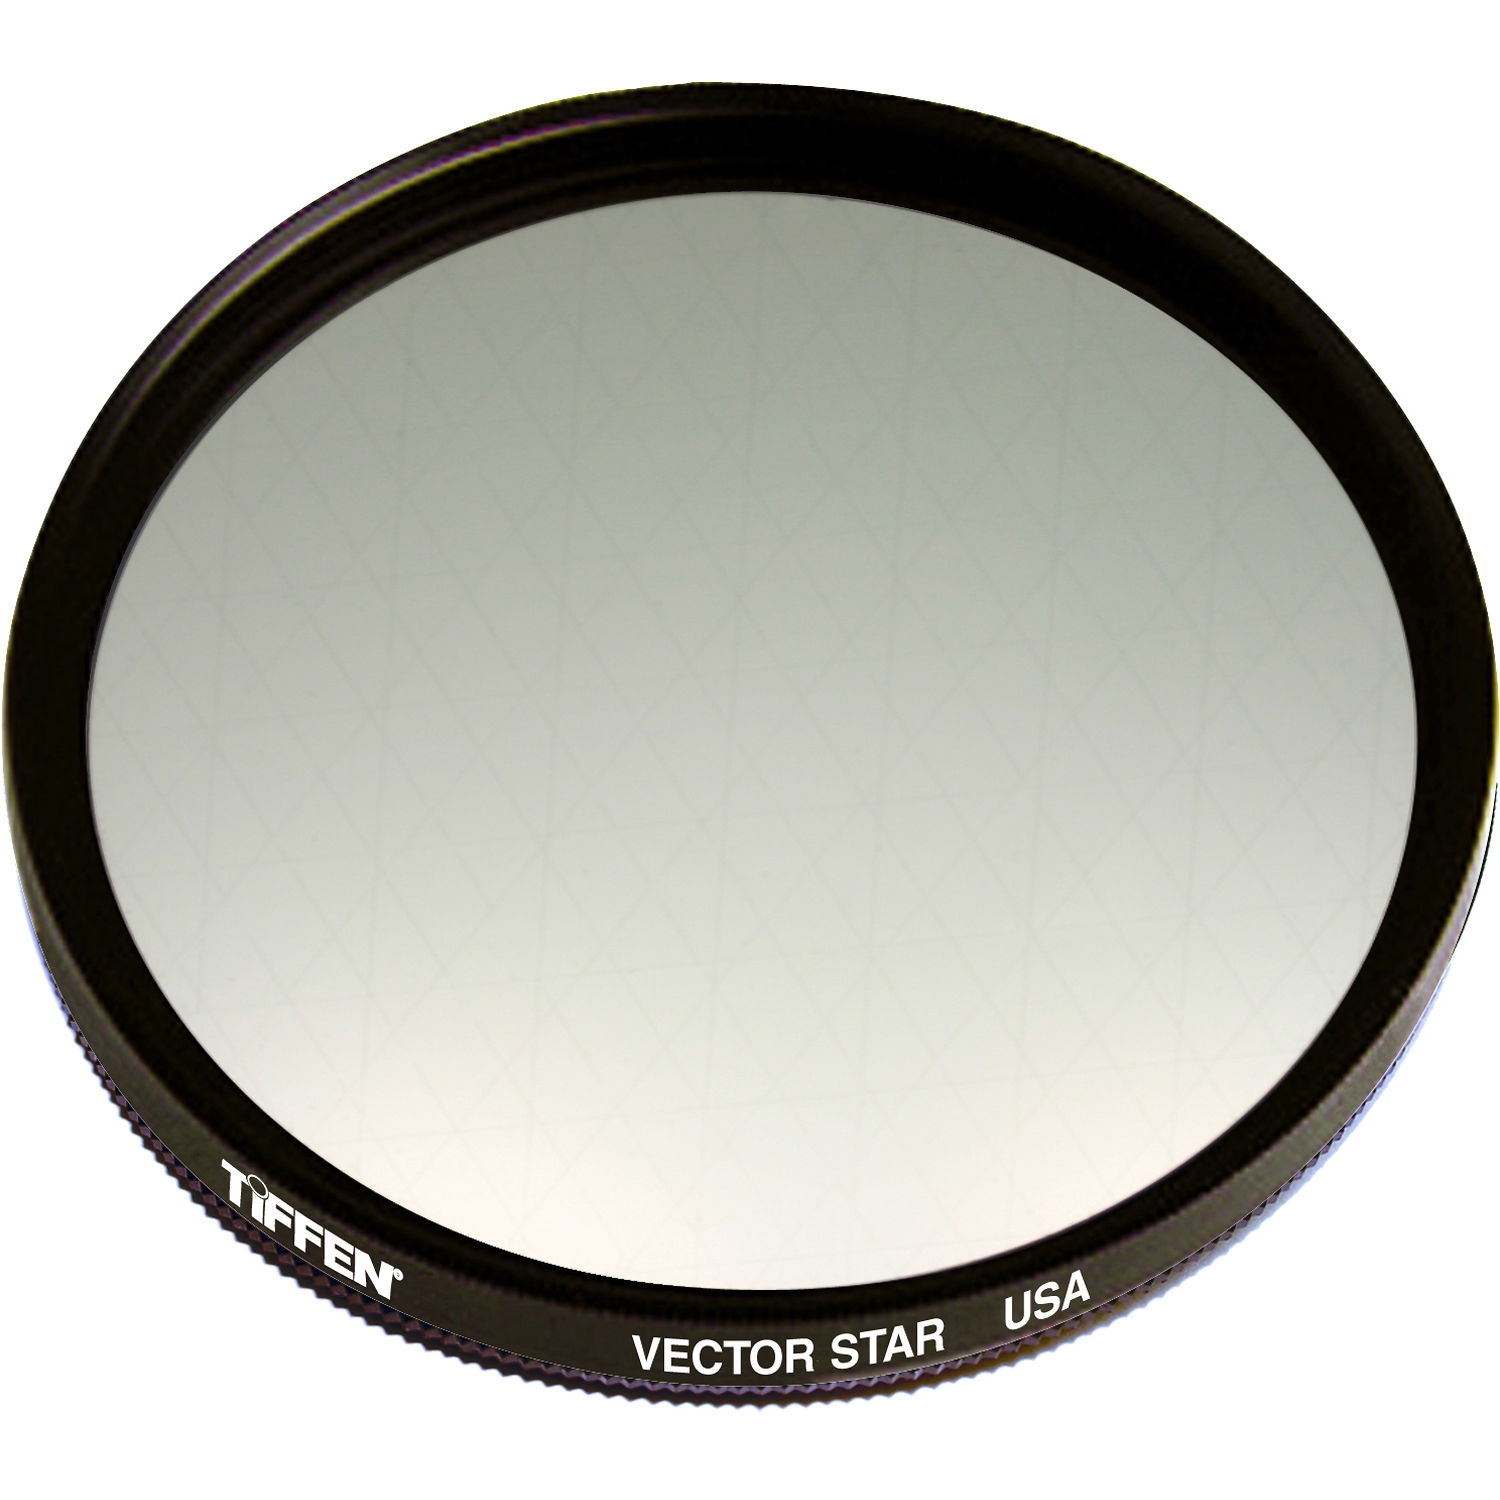 Tiffen 77mm Vector Star Effect Filter